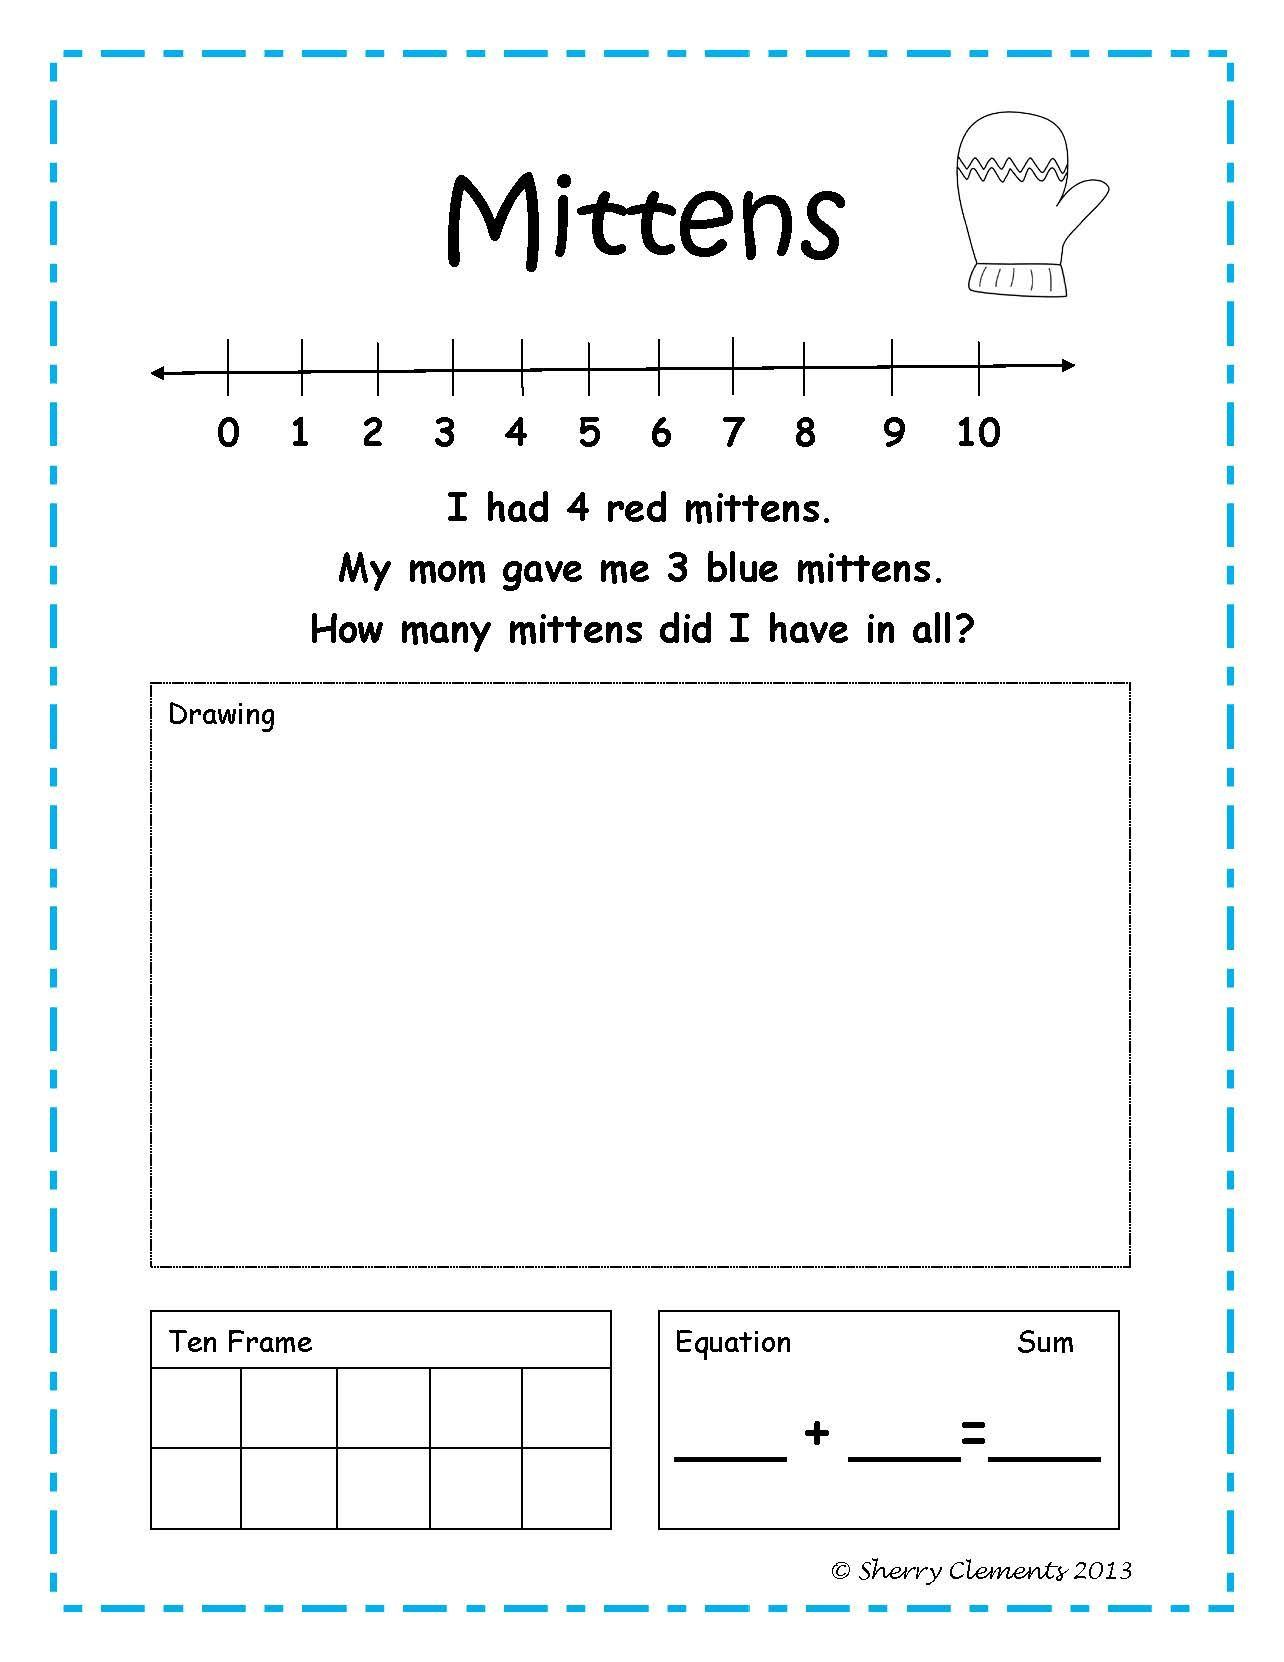 Addition Word Problems January Winter Kindergarten And First Grade Number Line Draw To Solve Addition Words Math Word Problems Word Problem Worksheets Solving addition equations worksheets